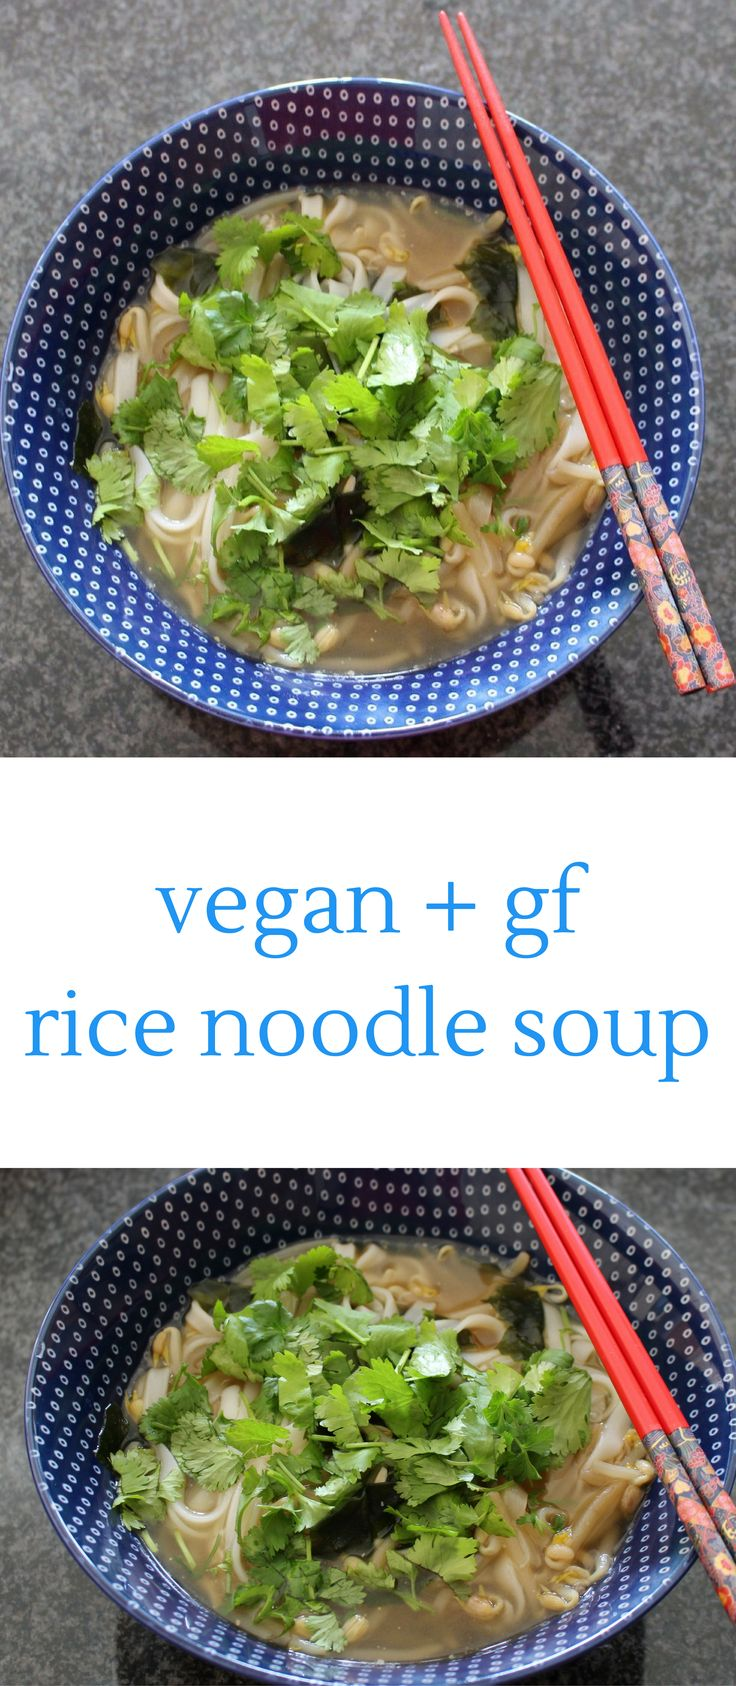 This Vegan Rice Noodle Soup is super quick and easy to make and it's also gluten-free.